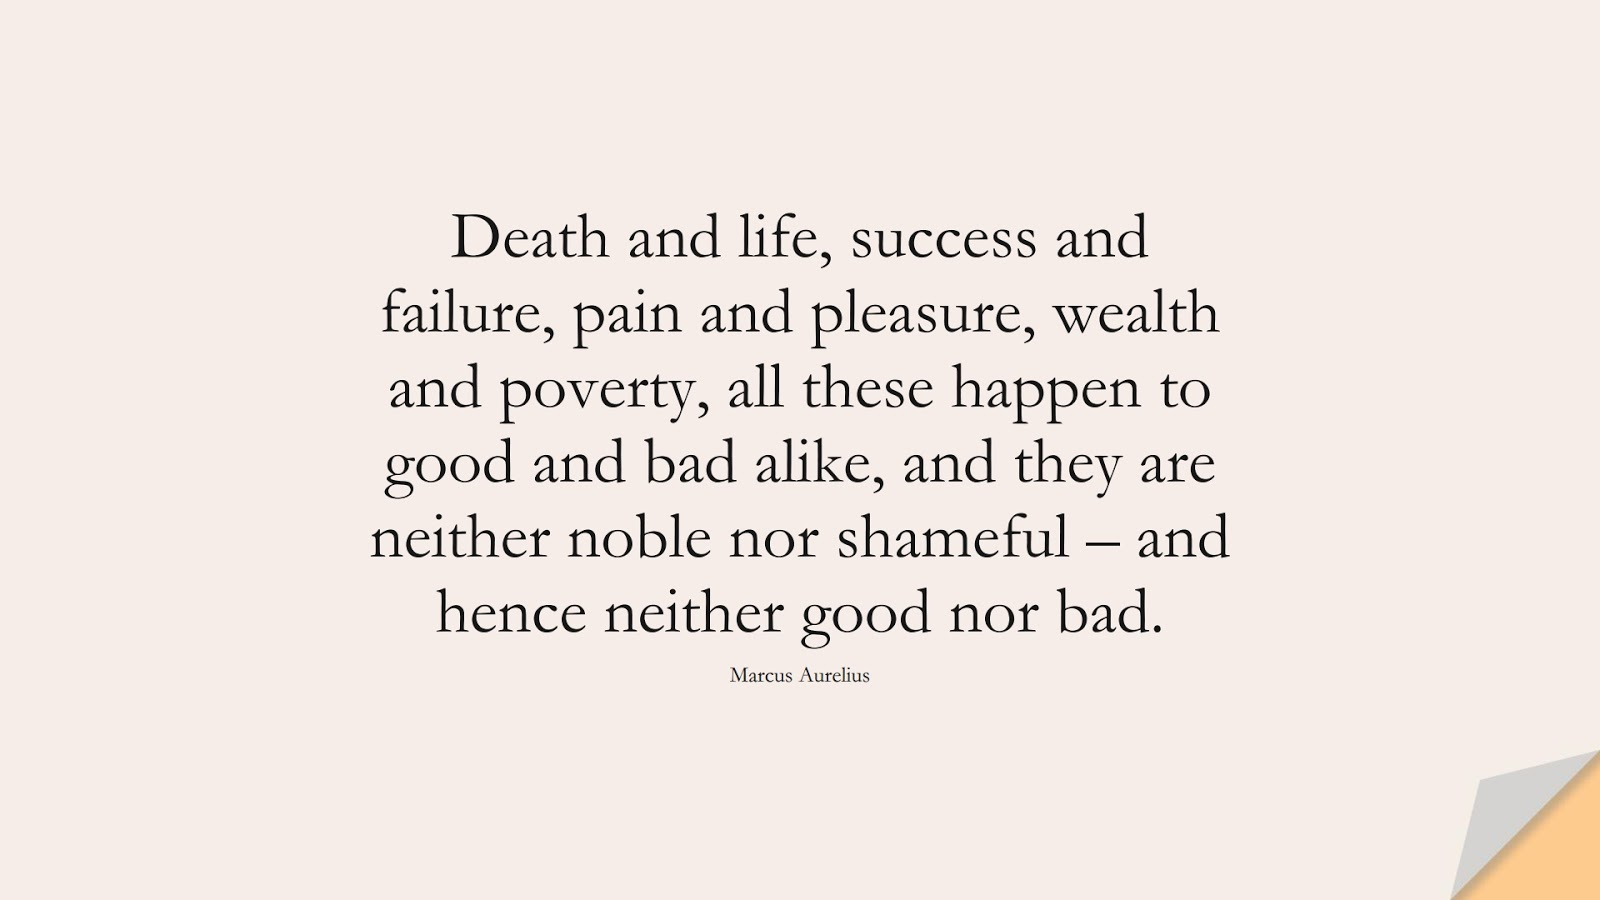 Death and life, success and failure, pain and pleasure, wealth and poverty, all these happen to good and bad alike, and they are neither noble nor shameful – and hence neither good nor bad. (Marcus Aurelius);  #MarcusAureliusQuotes